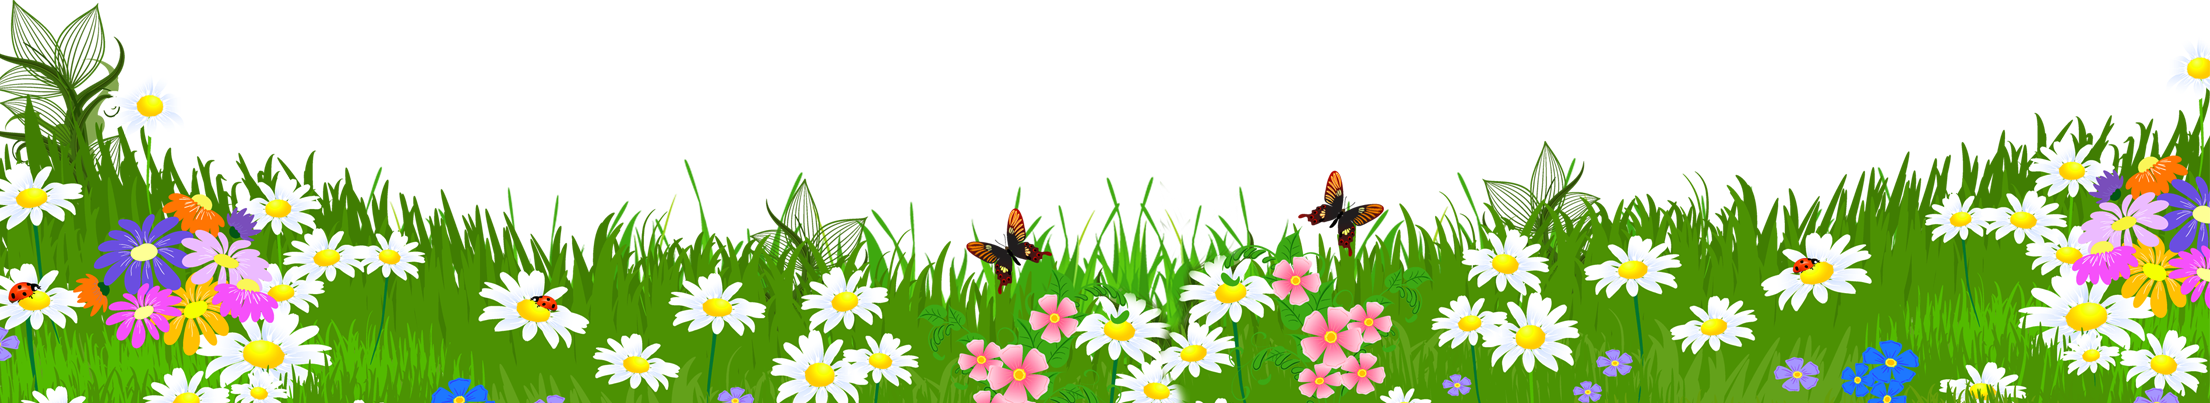 graphic royalty free library Ground with flowers png. Grass clipart blue background